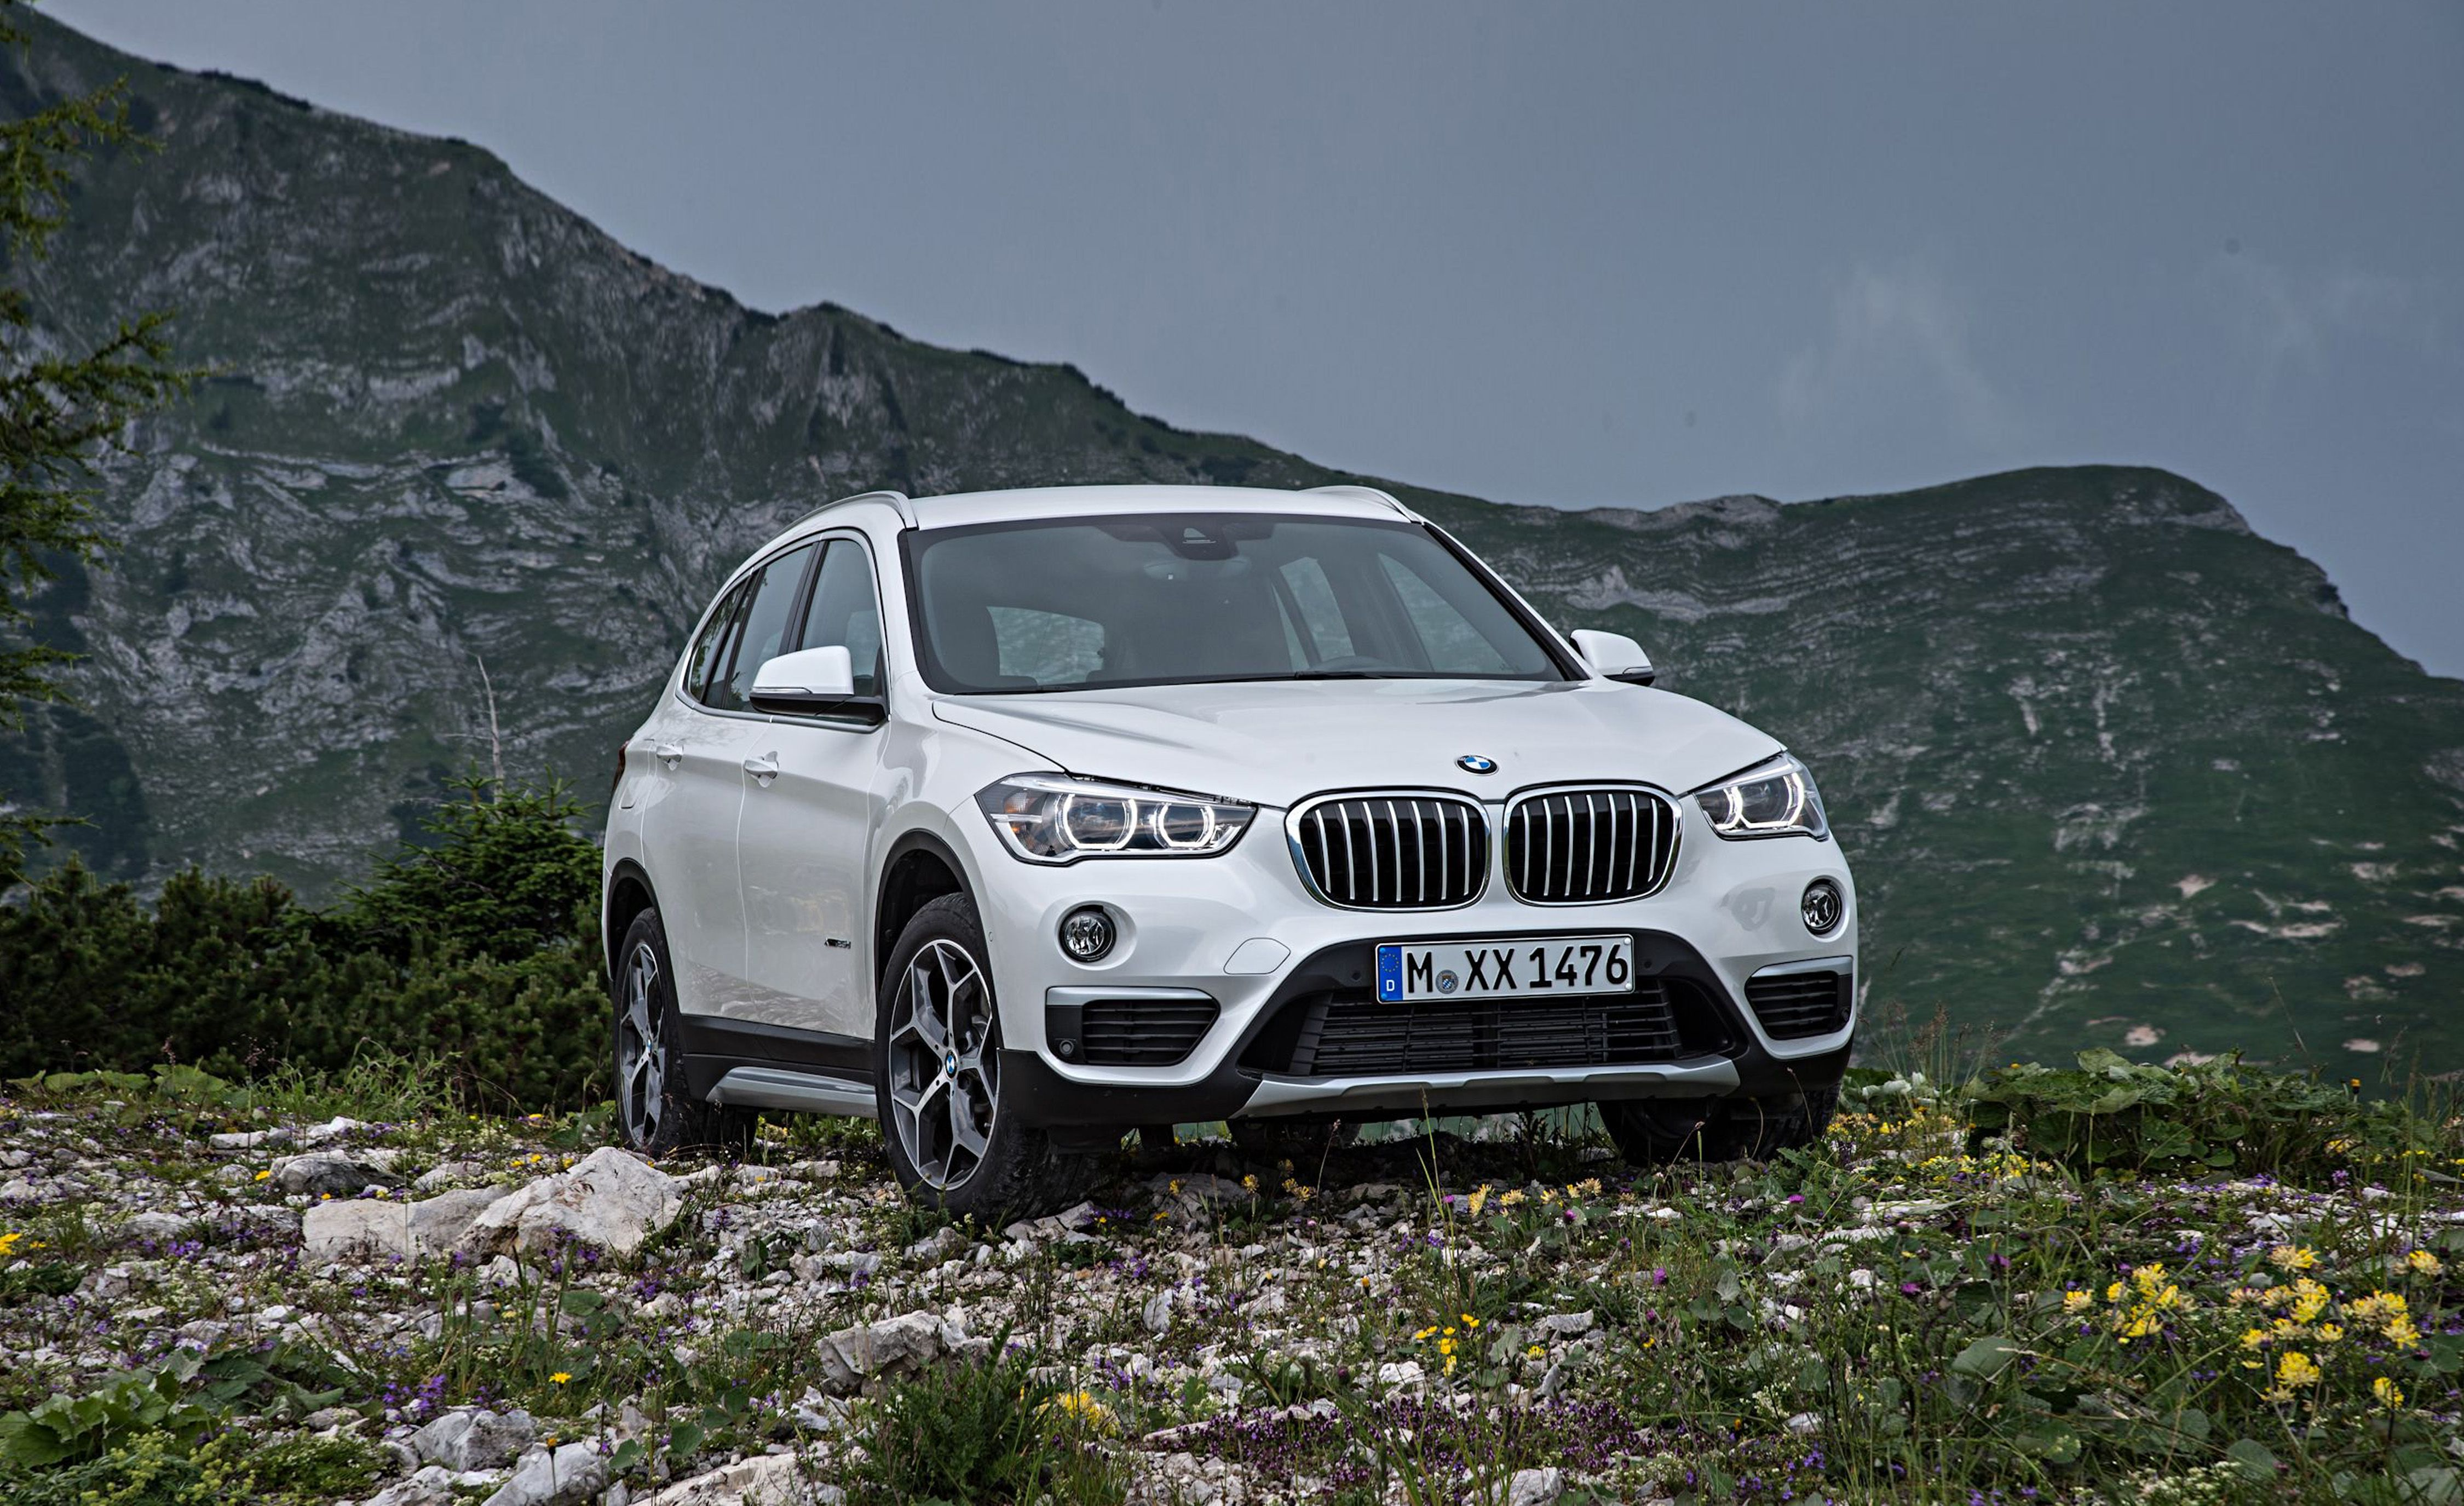 2019 bmw x1 reviews bmw x1 price photos and specs. Black Bedroom Furniture Sets. Home Design Ideas